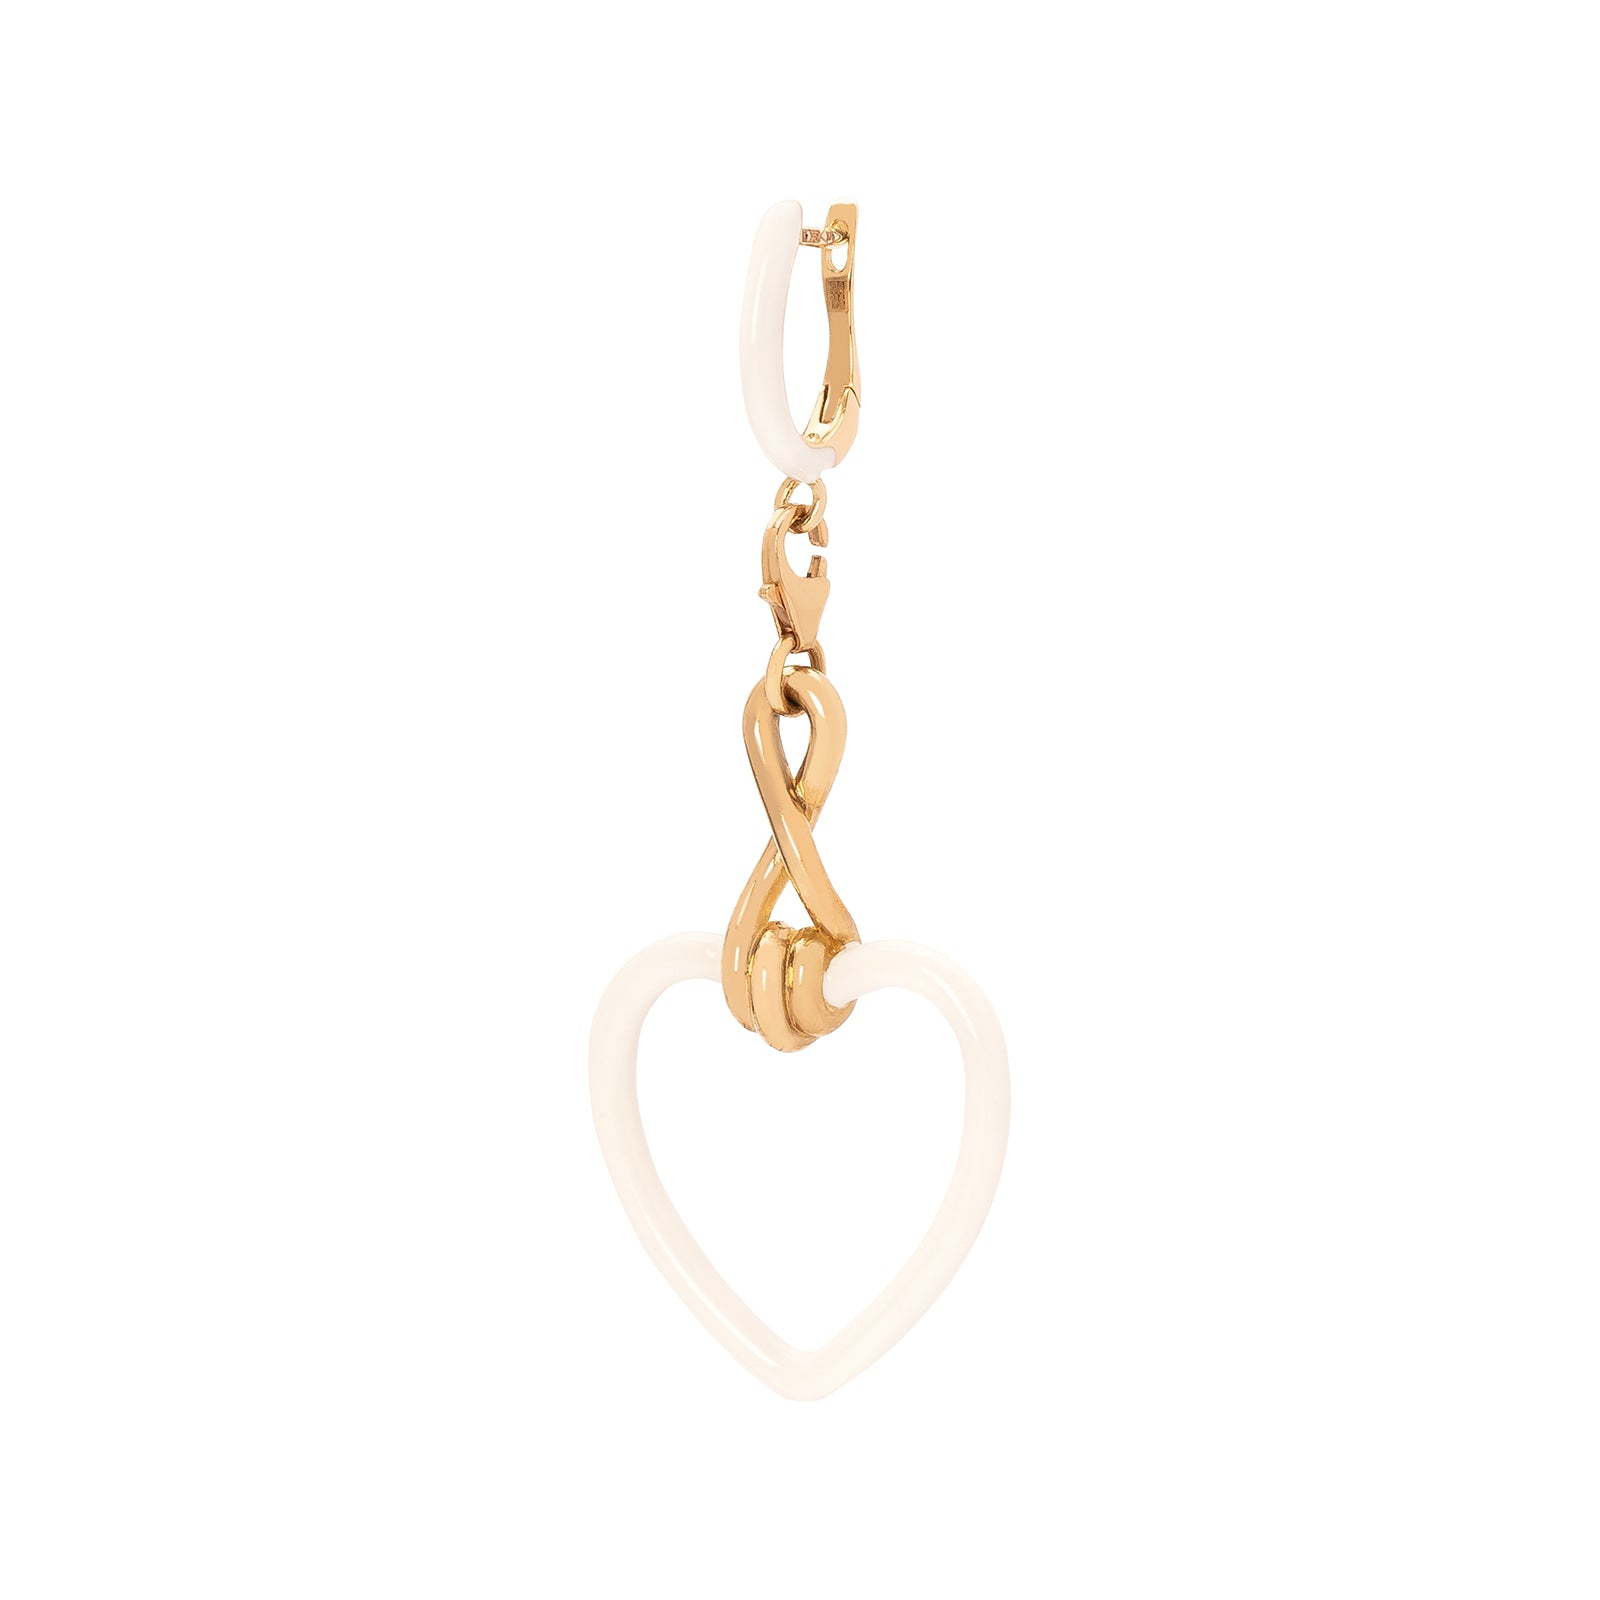 Bea Bongiasca Heart Charm - White Enamel - Charms & Pendants - Broken English Jewelry